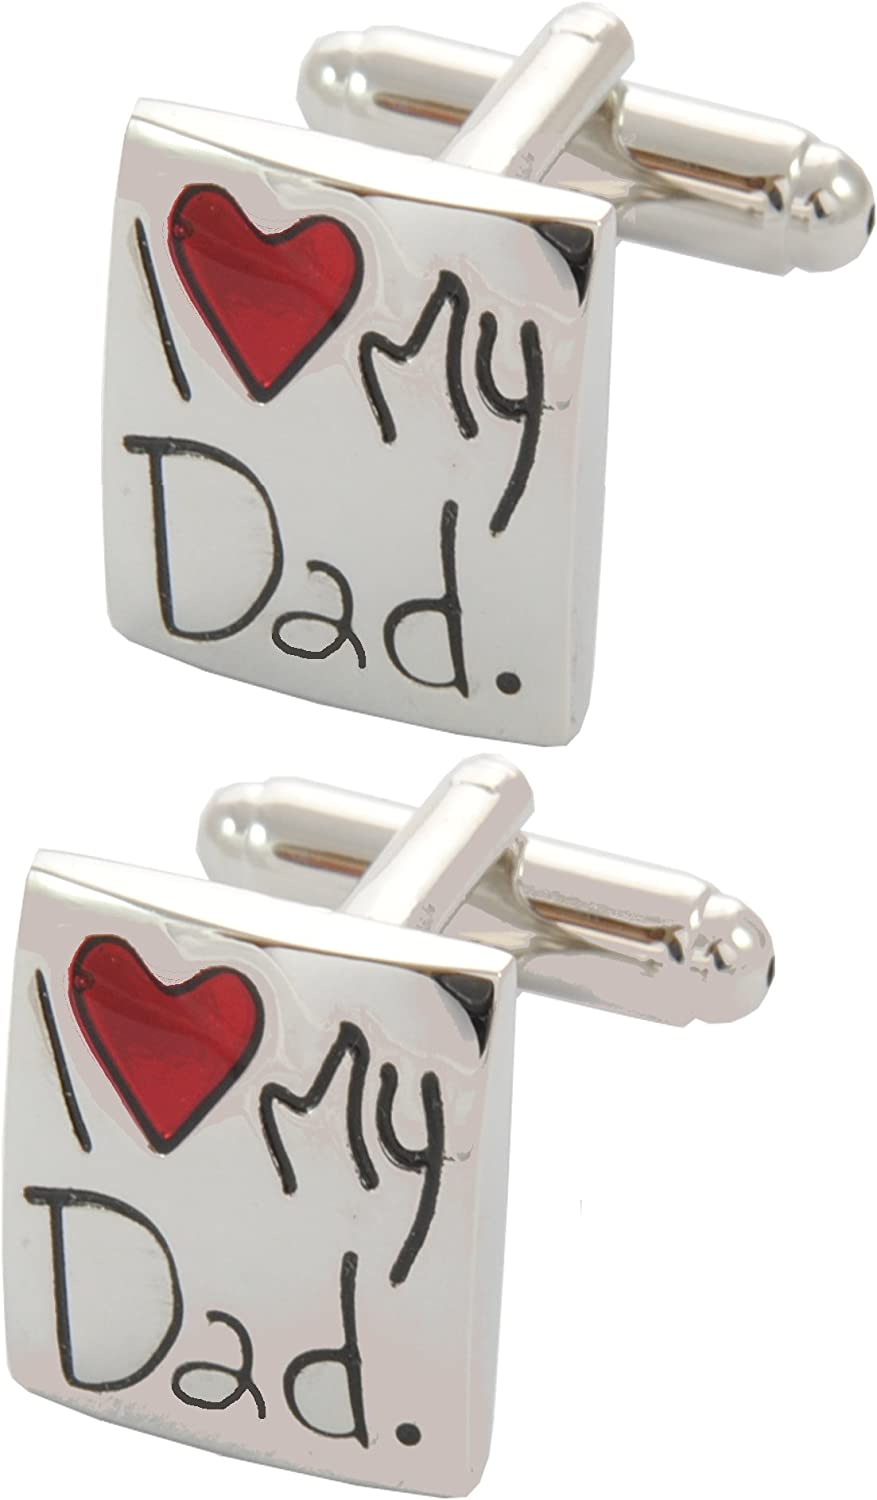 COLLAR AND CUFFS LONDON - Premium Cufflinks with Gift Box - I Love My Dad - Heart Square - Silver and Red Colors